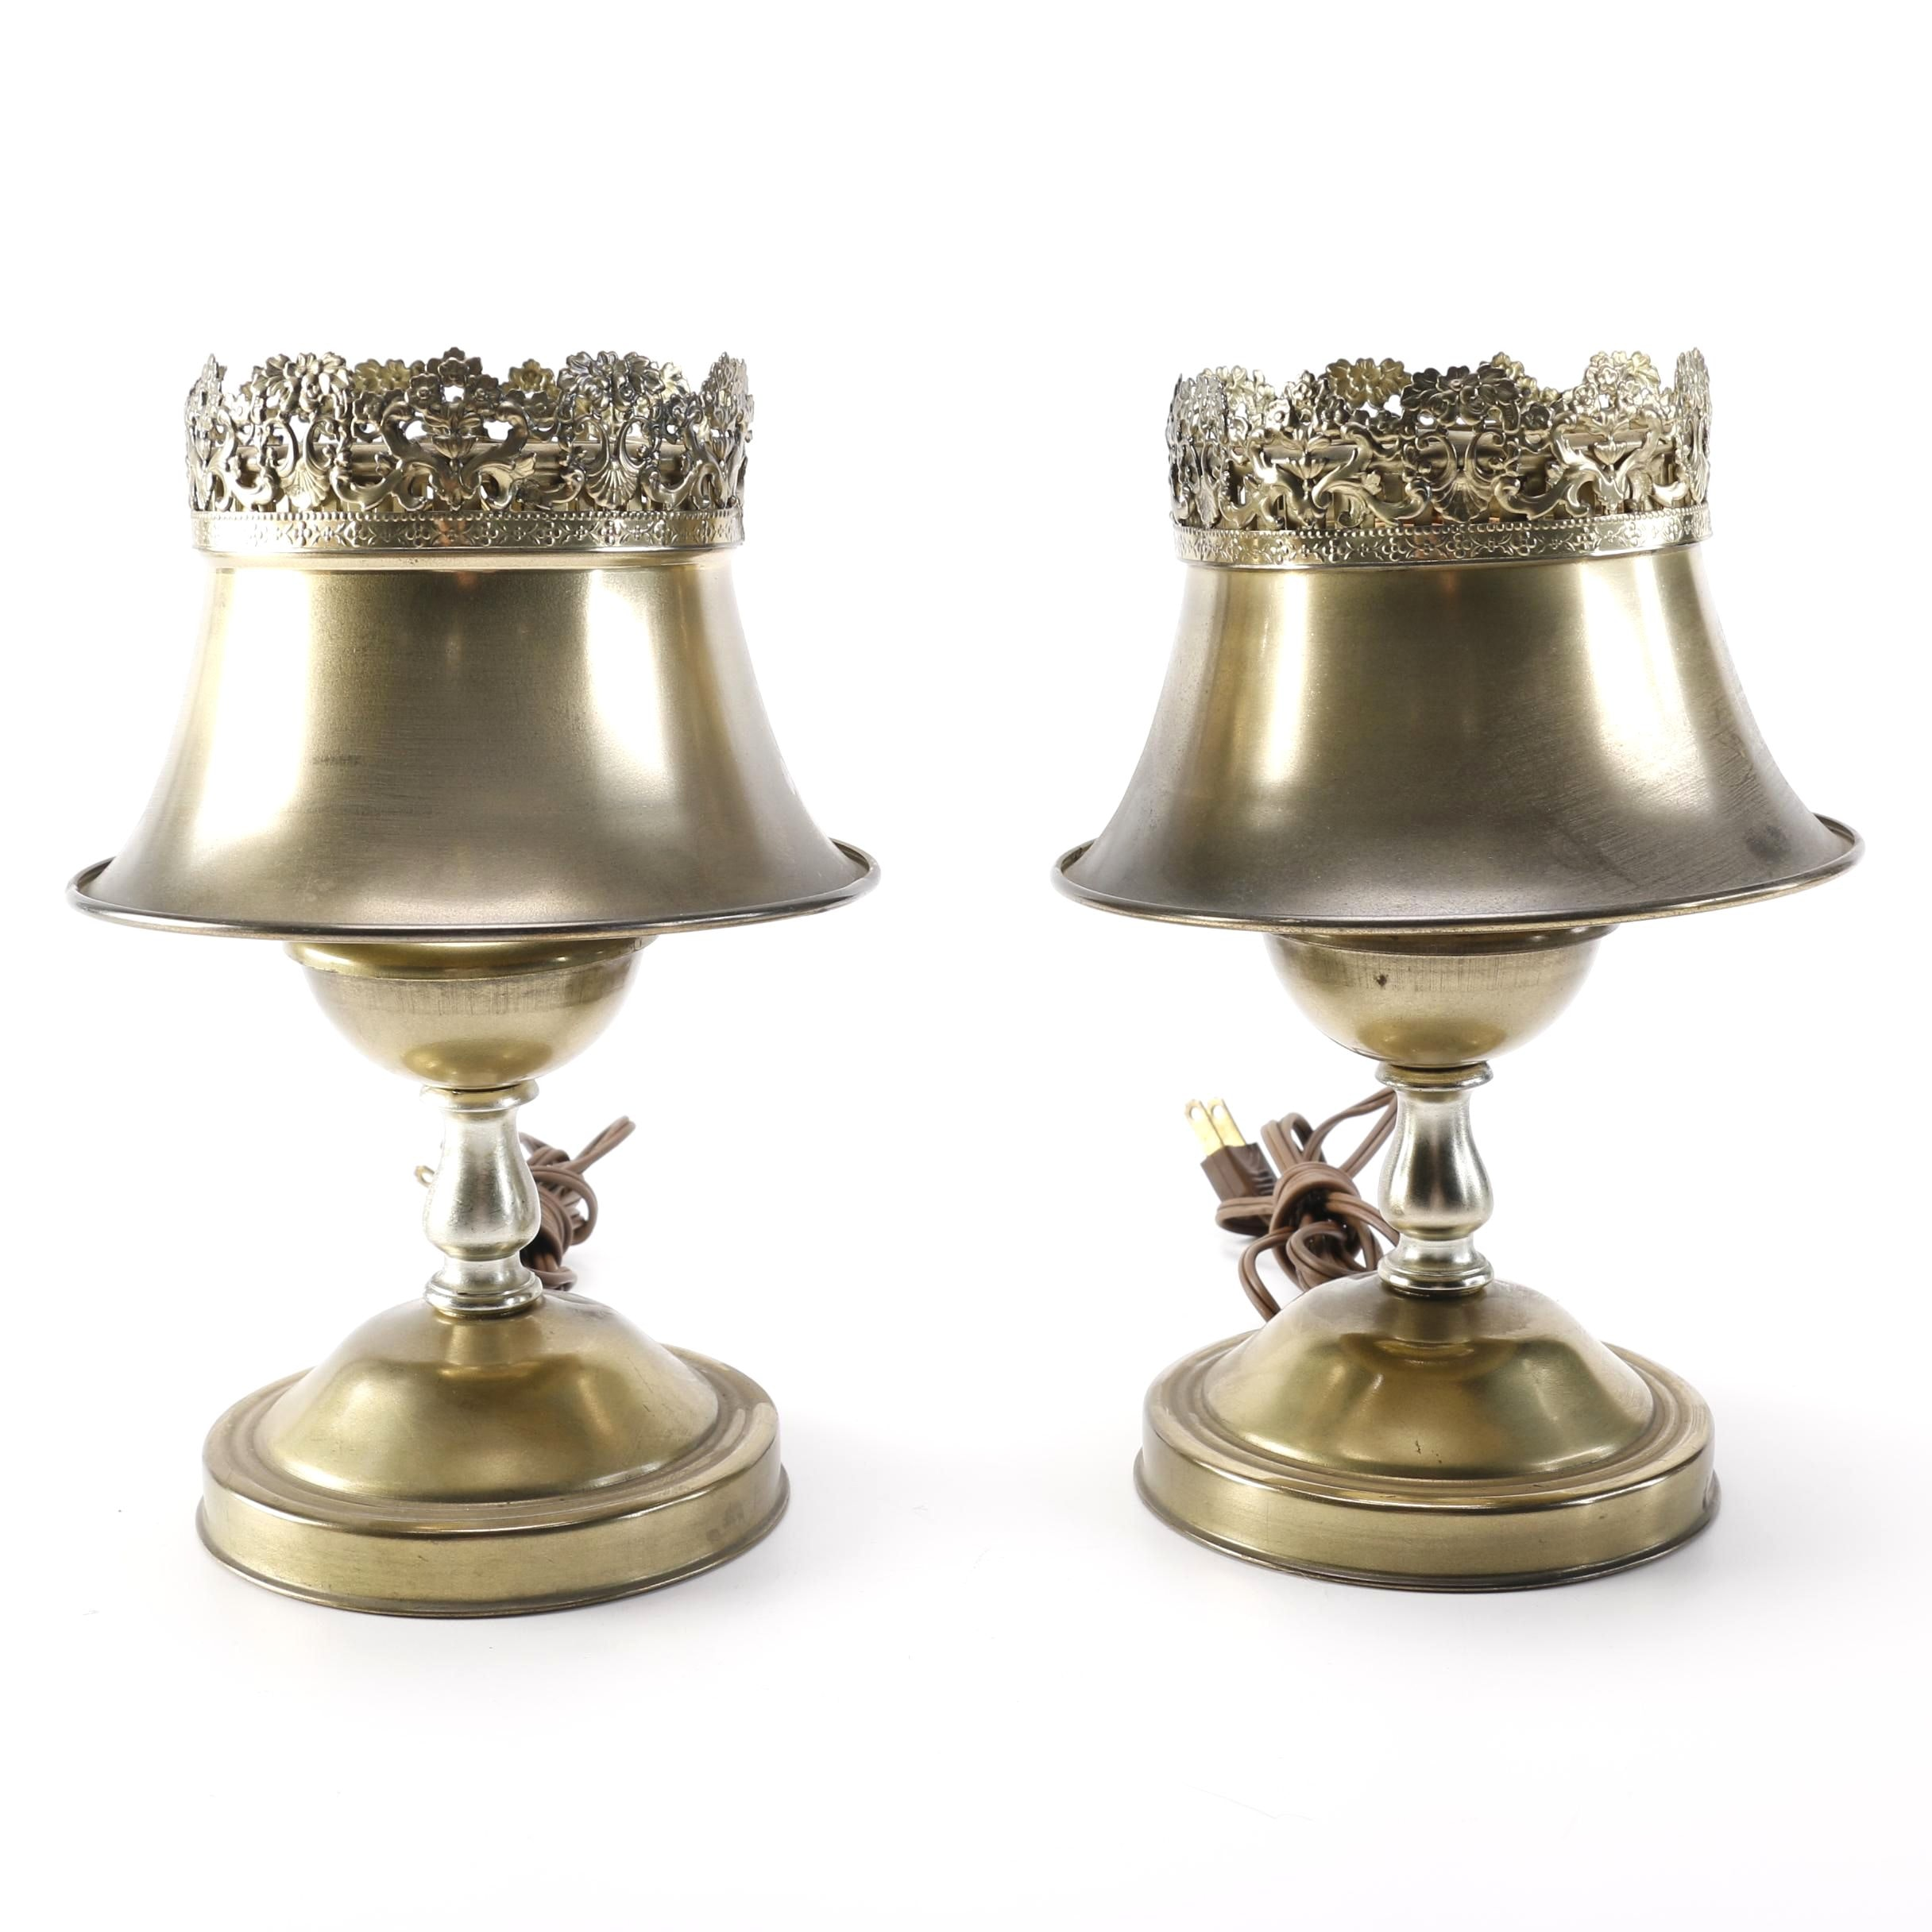 Pair of Vintage Metal Lamps With Brass Shades